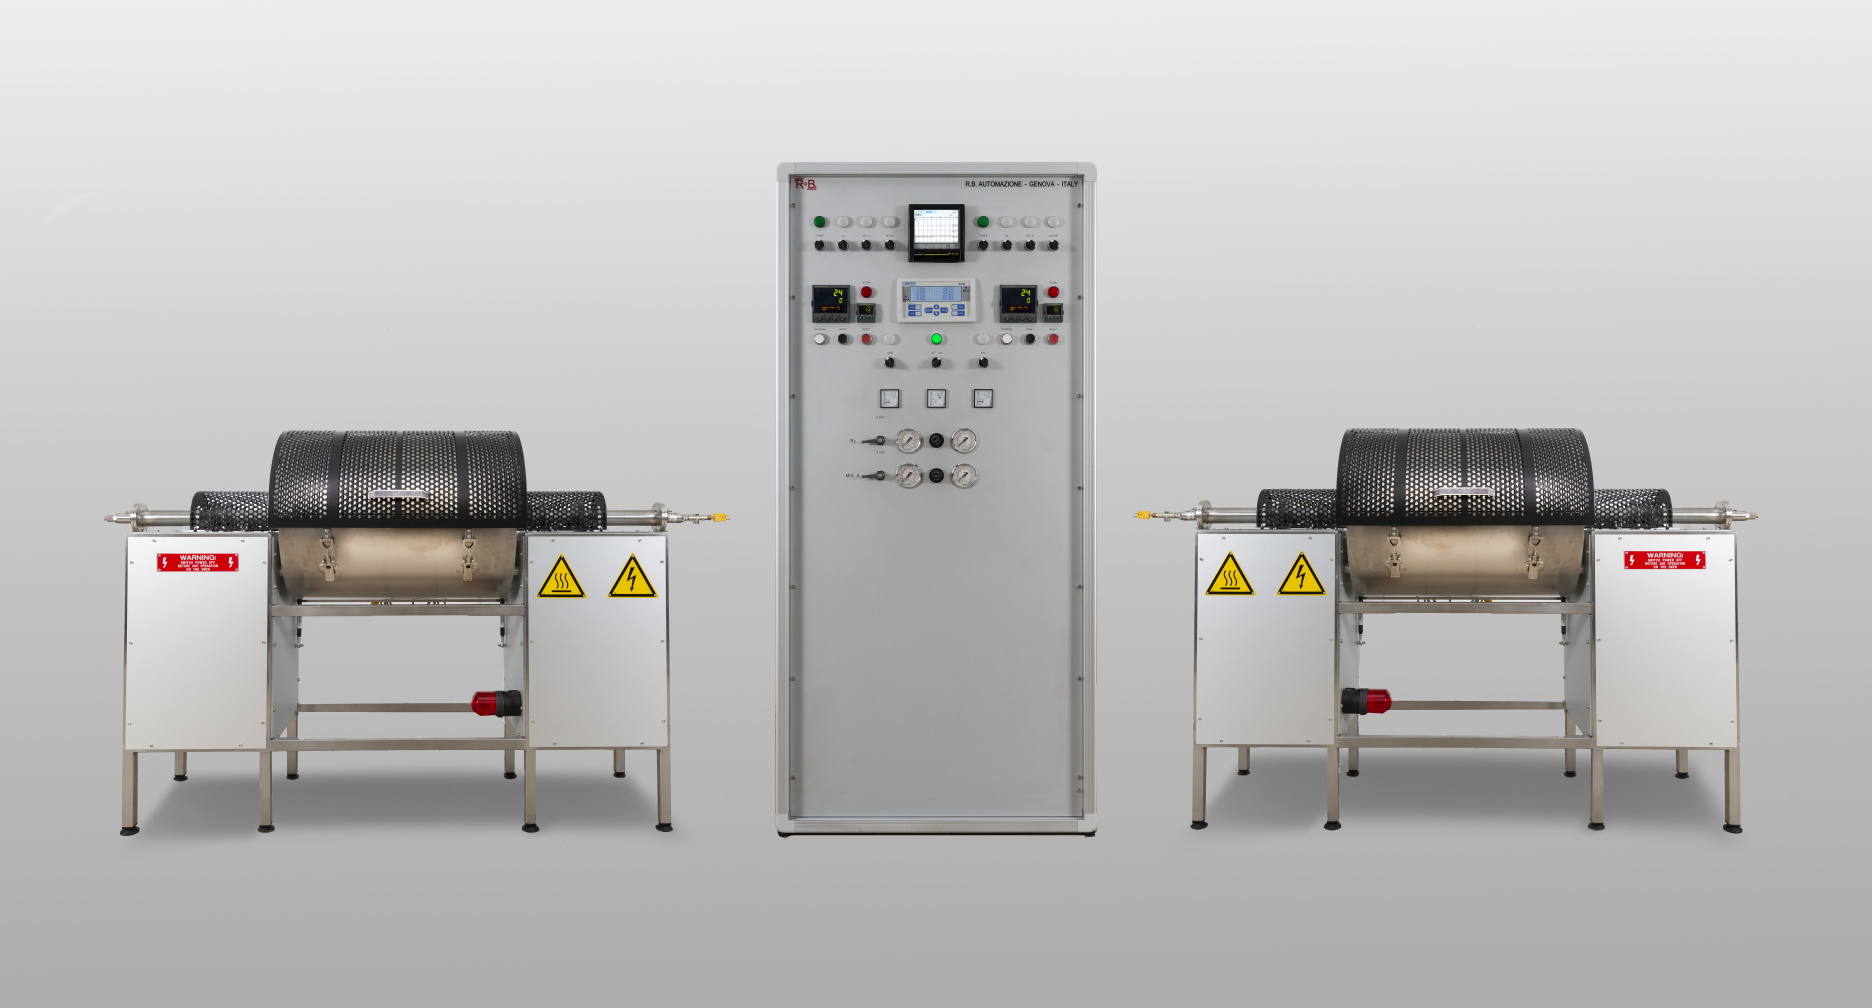 DR 7000 dual oven